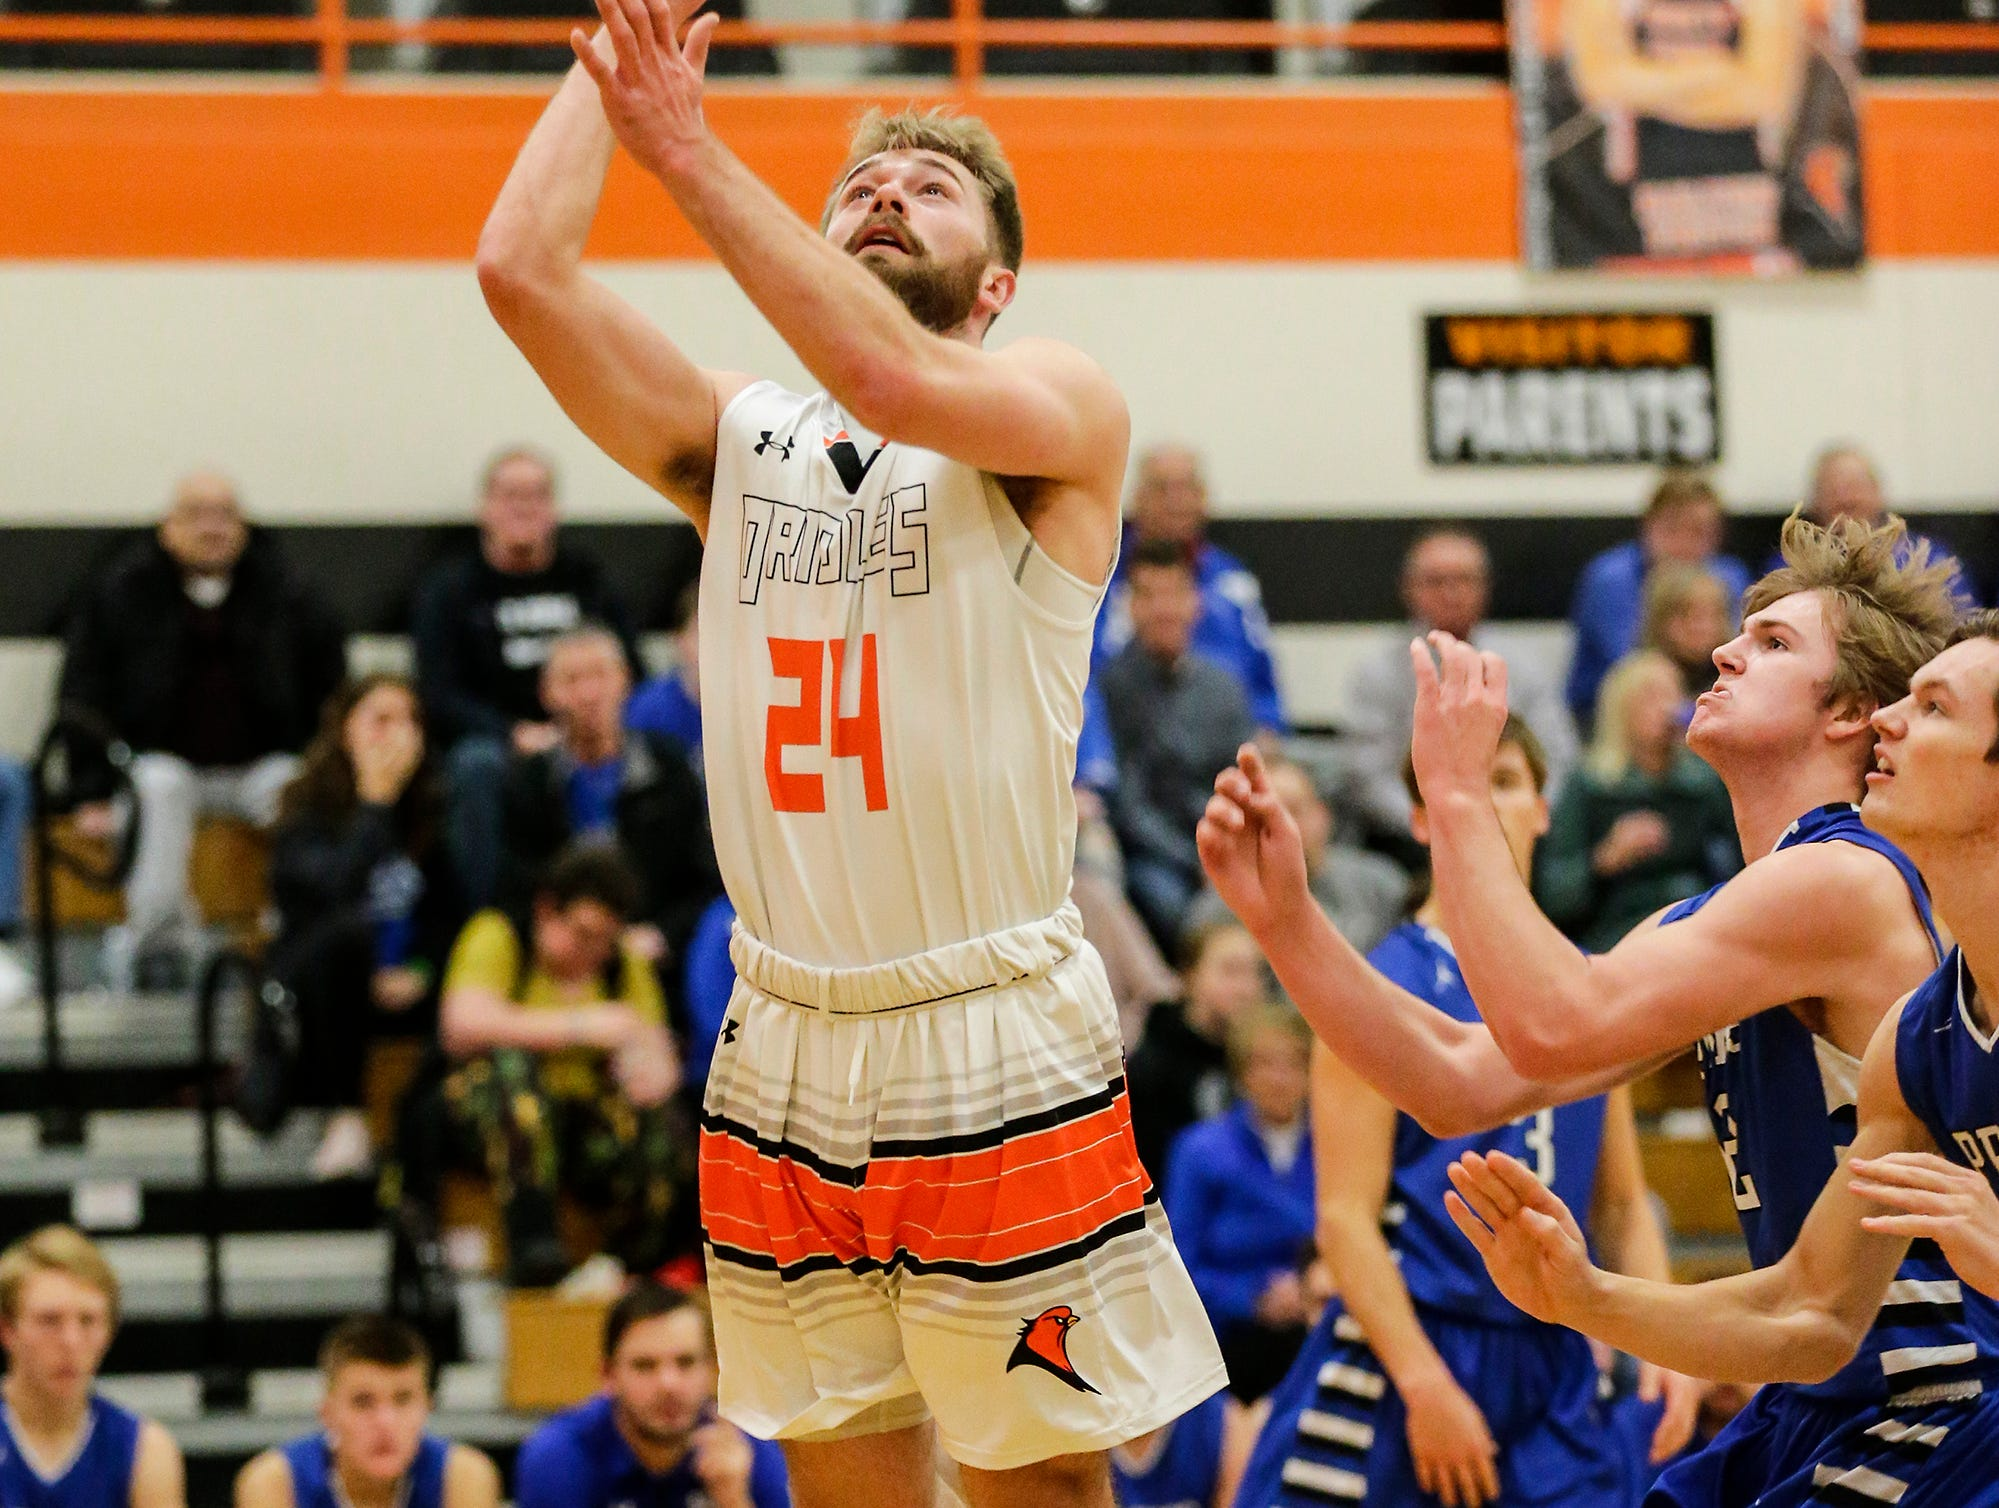 North Fond du Lac High School boys basketball's Alex Zander goes up for a basket against St. Mary's Springs Academy during their game Friday, December 7, 2018 in North Fond du Lac, Wisconsin. Doug Raflik/USA TODAY NETWORK-Wisconsin